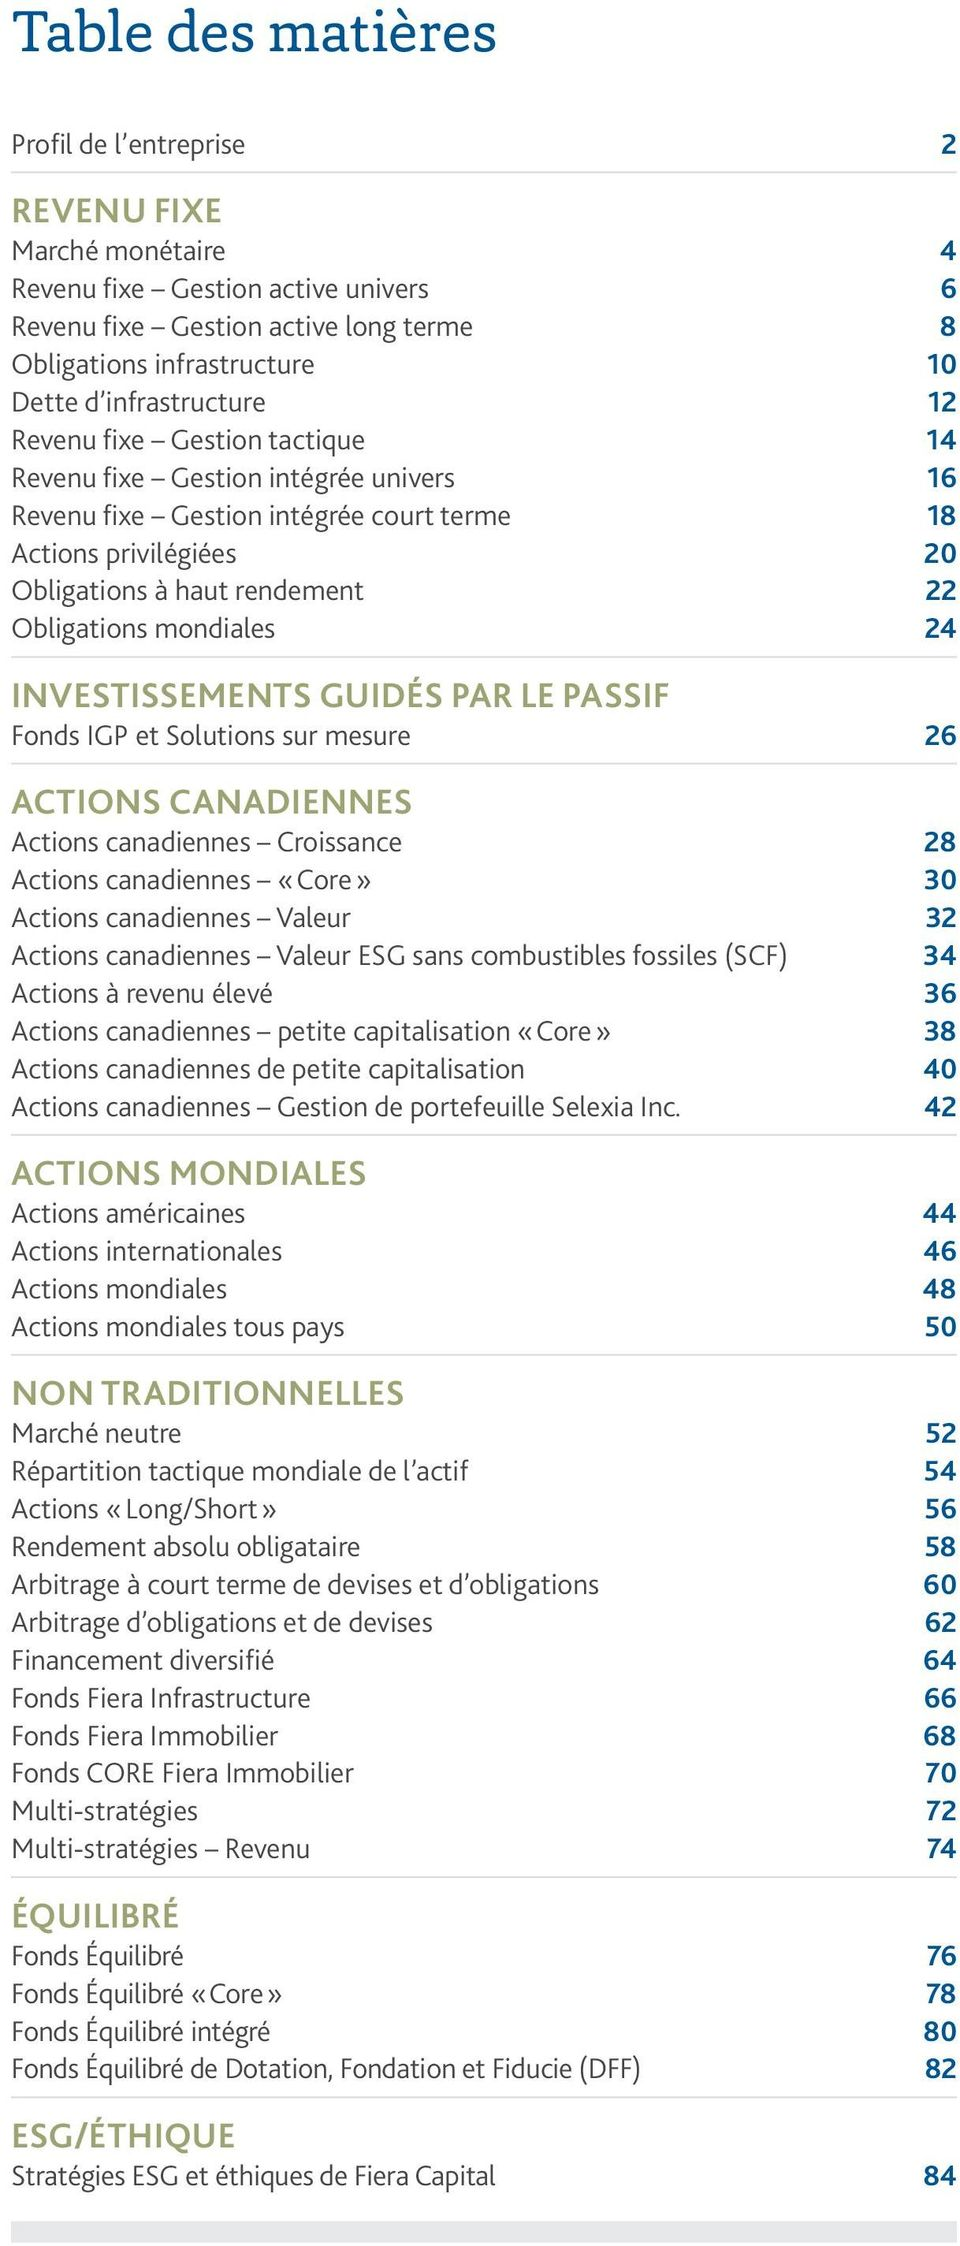 Obligations mondiales 24 INVESTISSEMENTS GUIDÉS PAR LE PASSIF Fonds IGP et Solutions sur mesure 26 ACTIONS CANADIENNES Actions canadiennes Croissance 28 Actions canadiennes «Core» 30 Actions